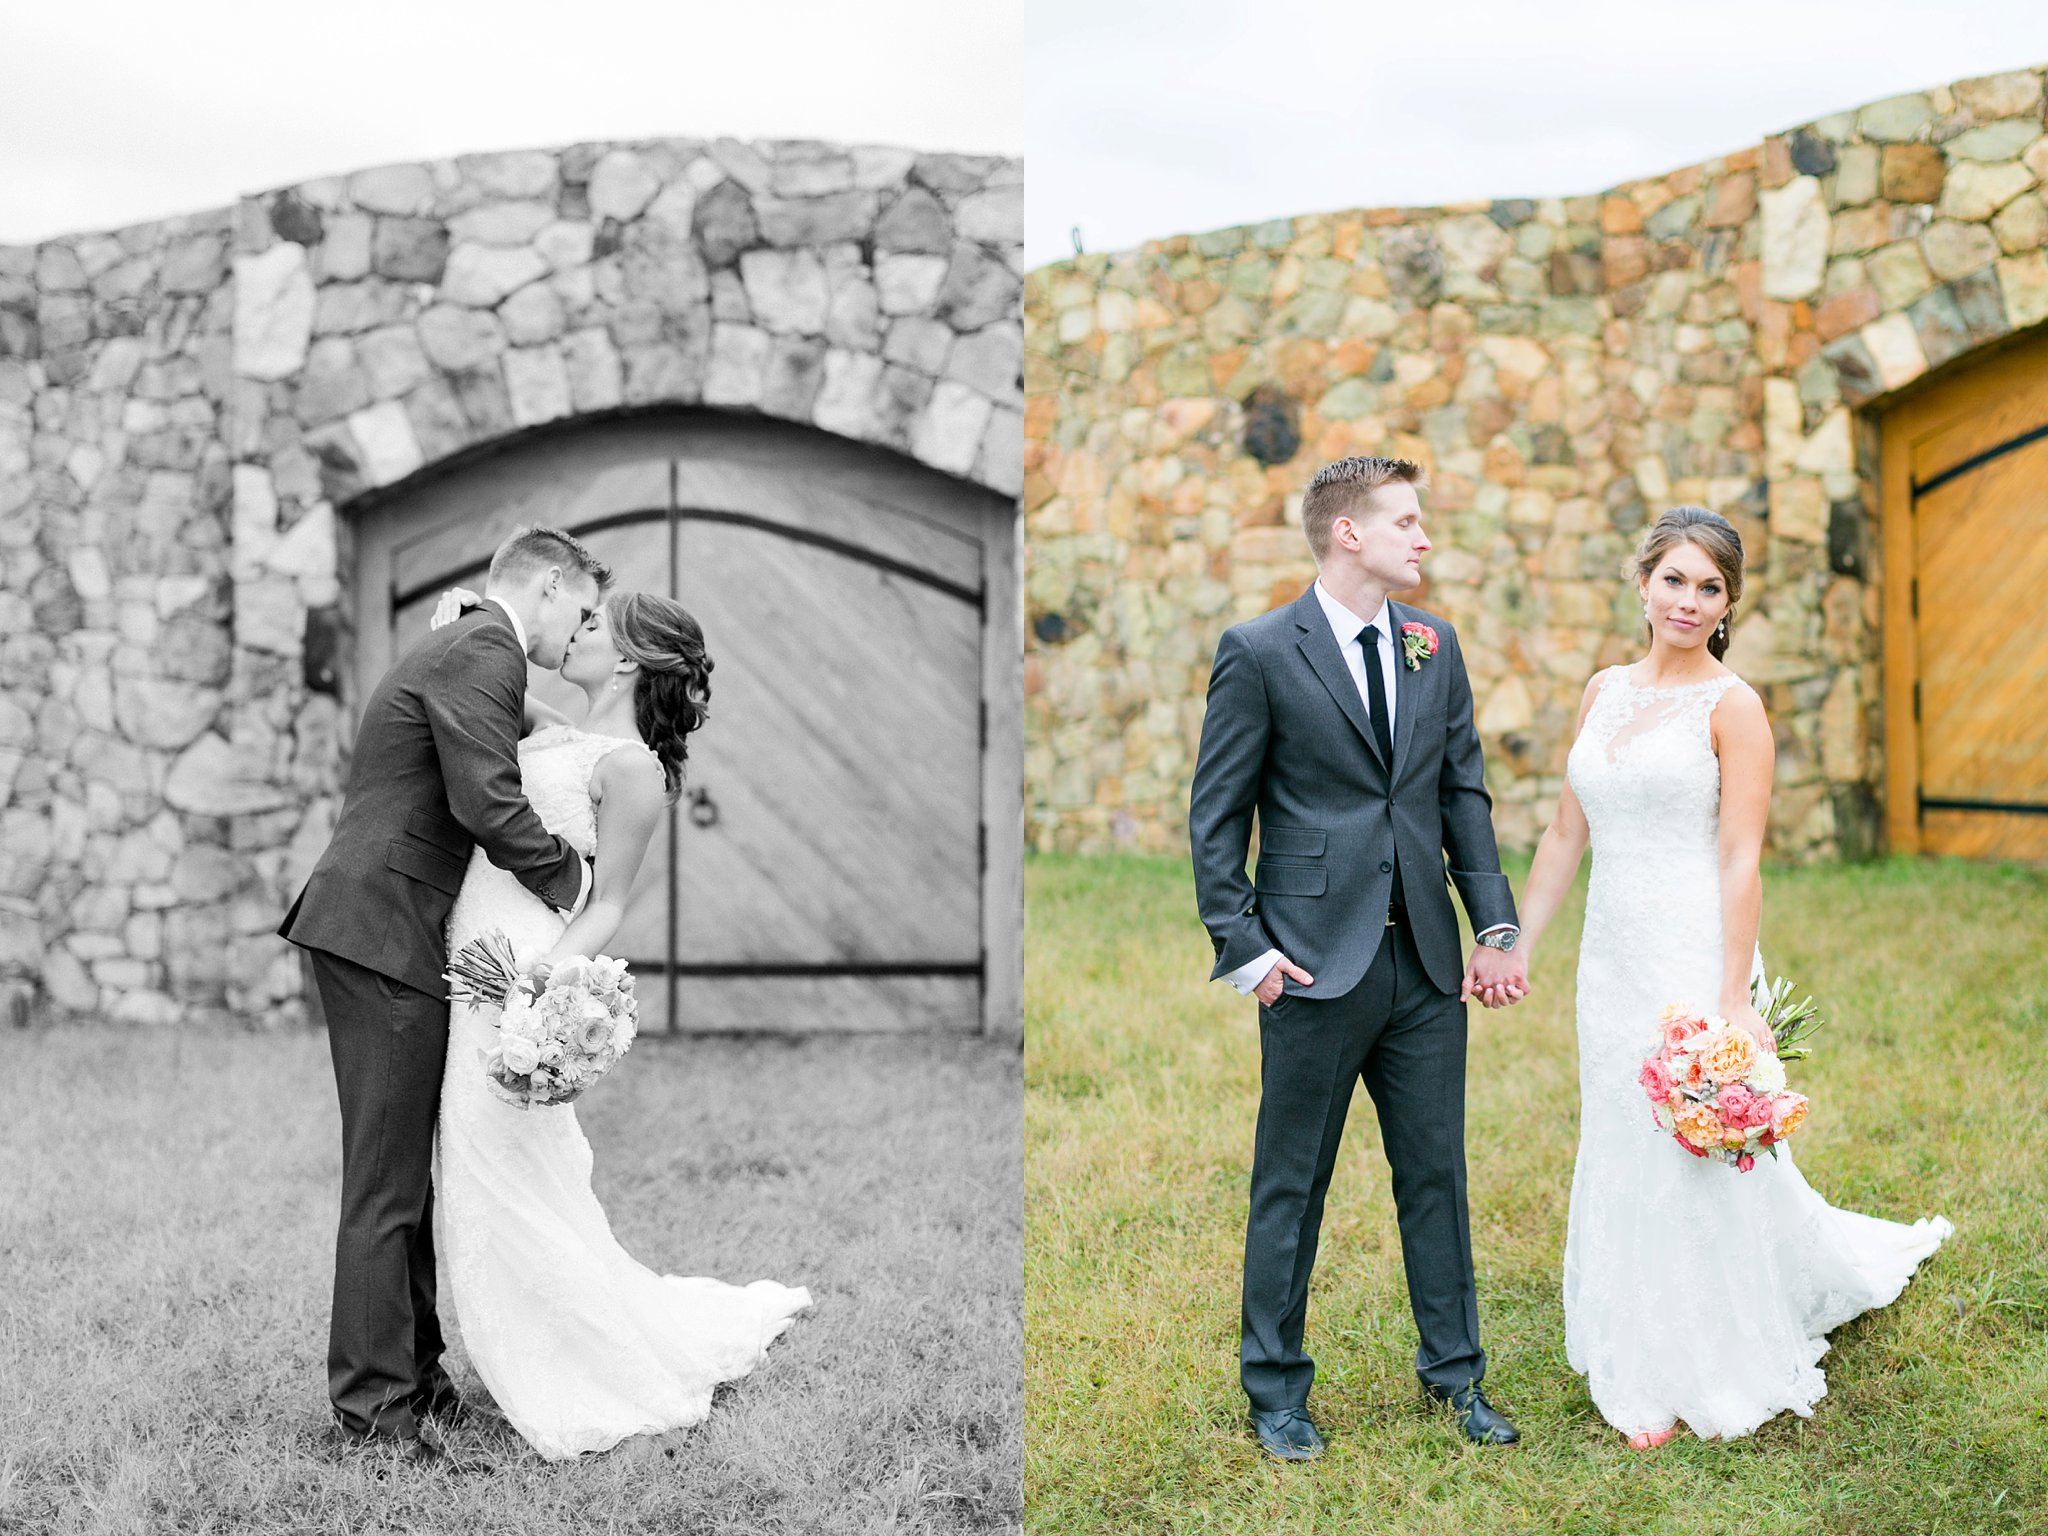 Stone Tower Winery Wedding Photos Virginia Wedding Photographer Megan Kelsey Photography Sam & Angela-258.jpg